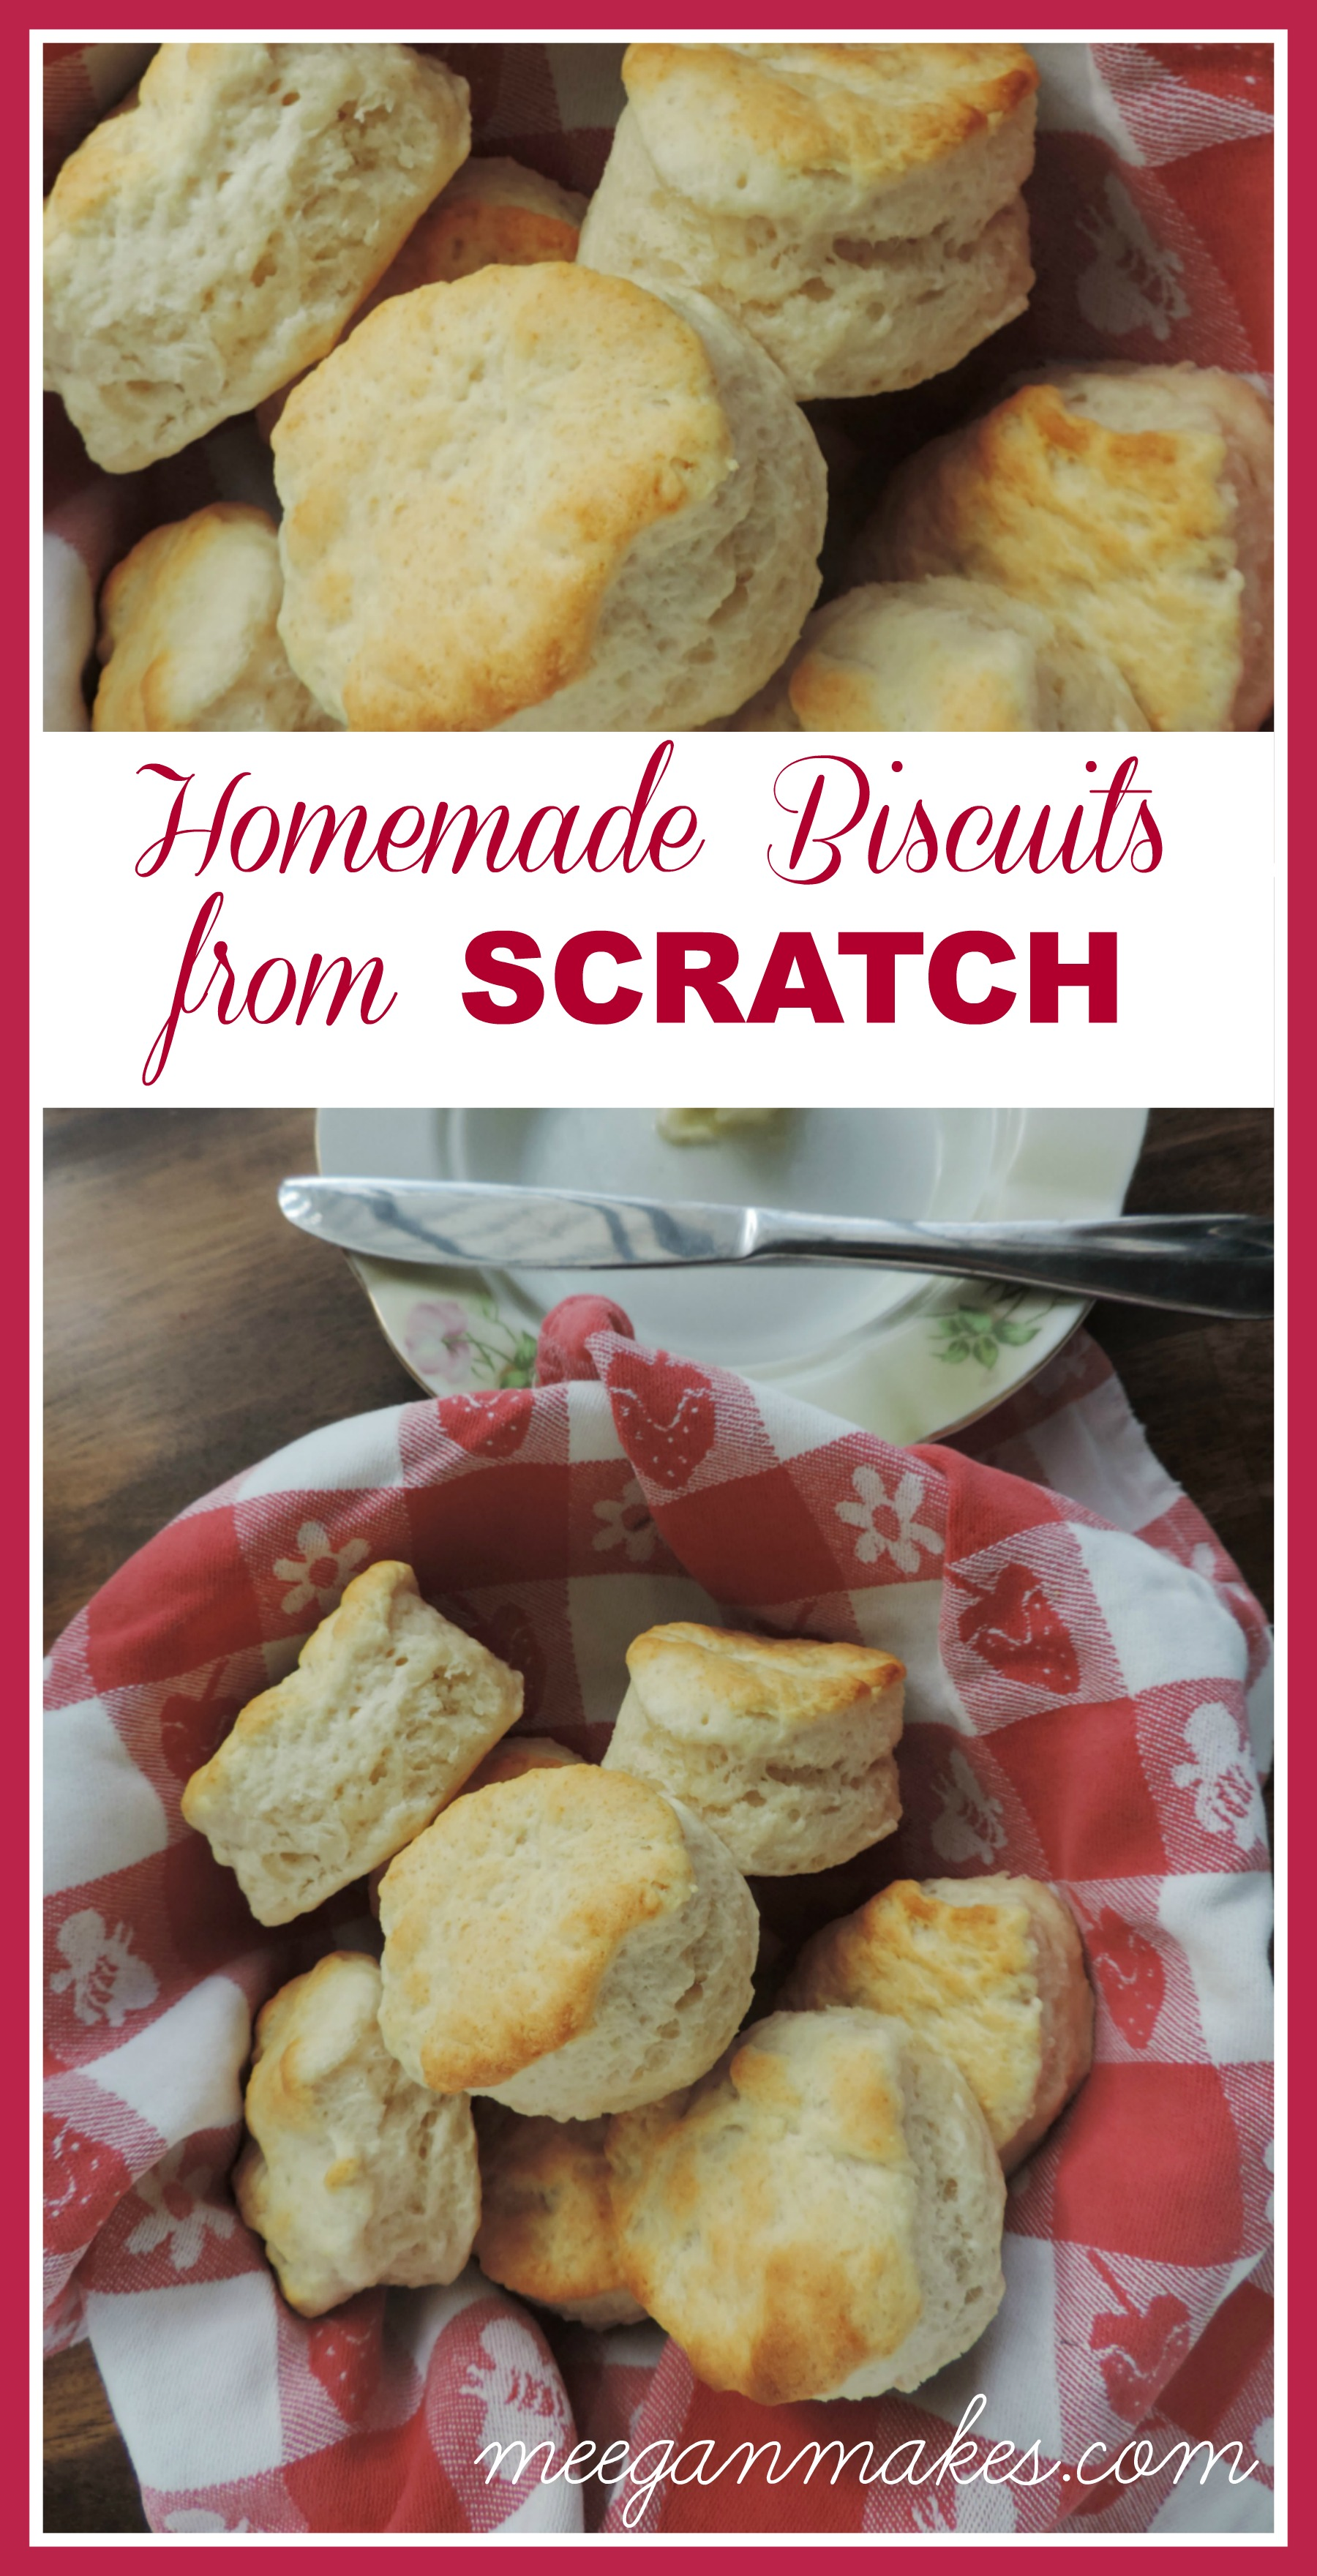 How To Make Homemade Biscuits From Scratch by meeganmakes.com